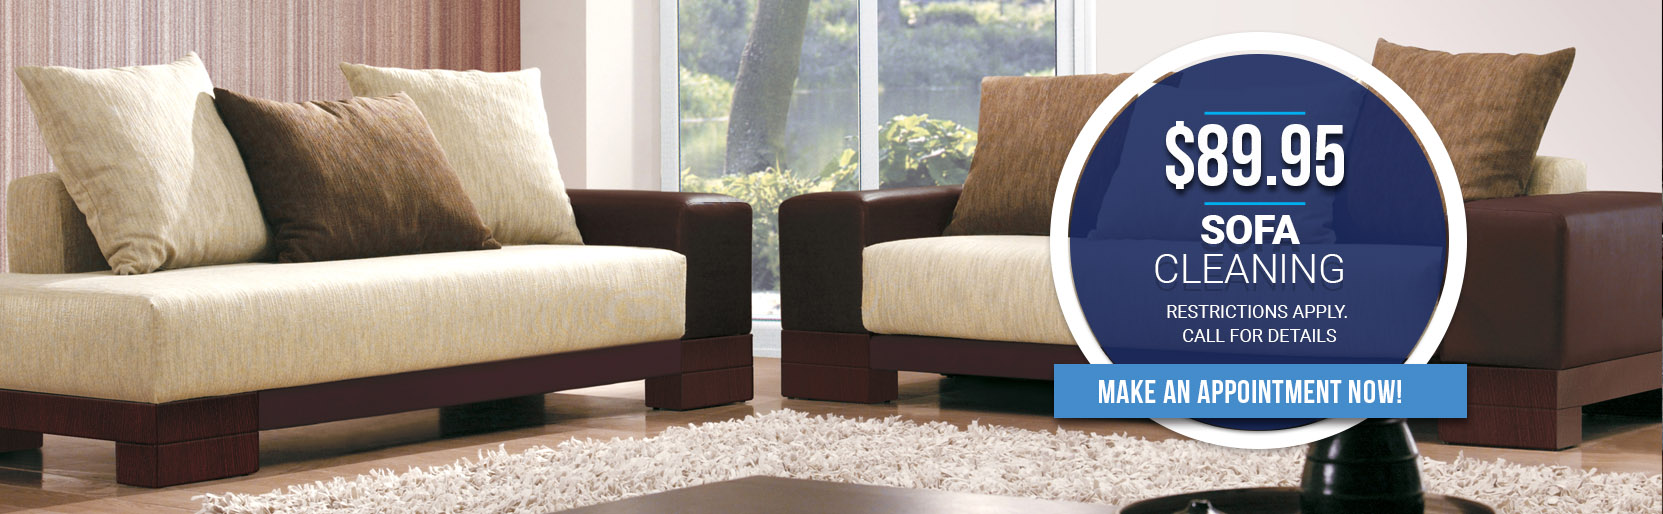 Furniture/Upholstery Cleaning